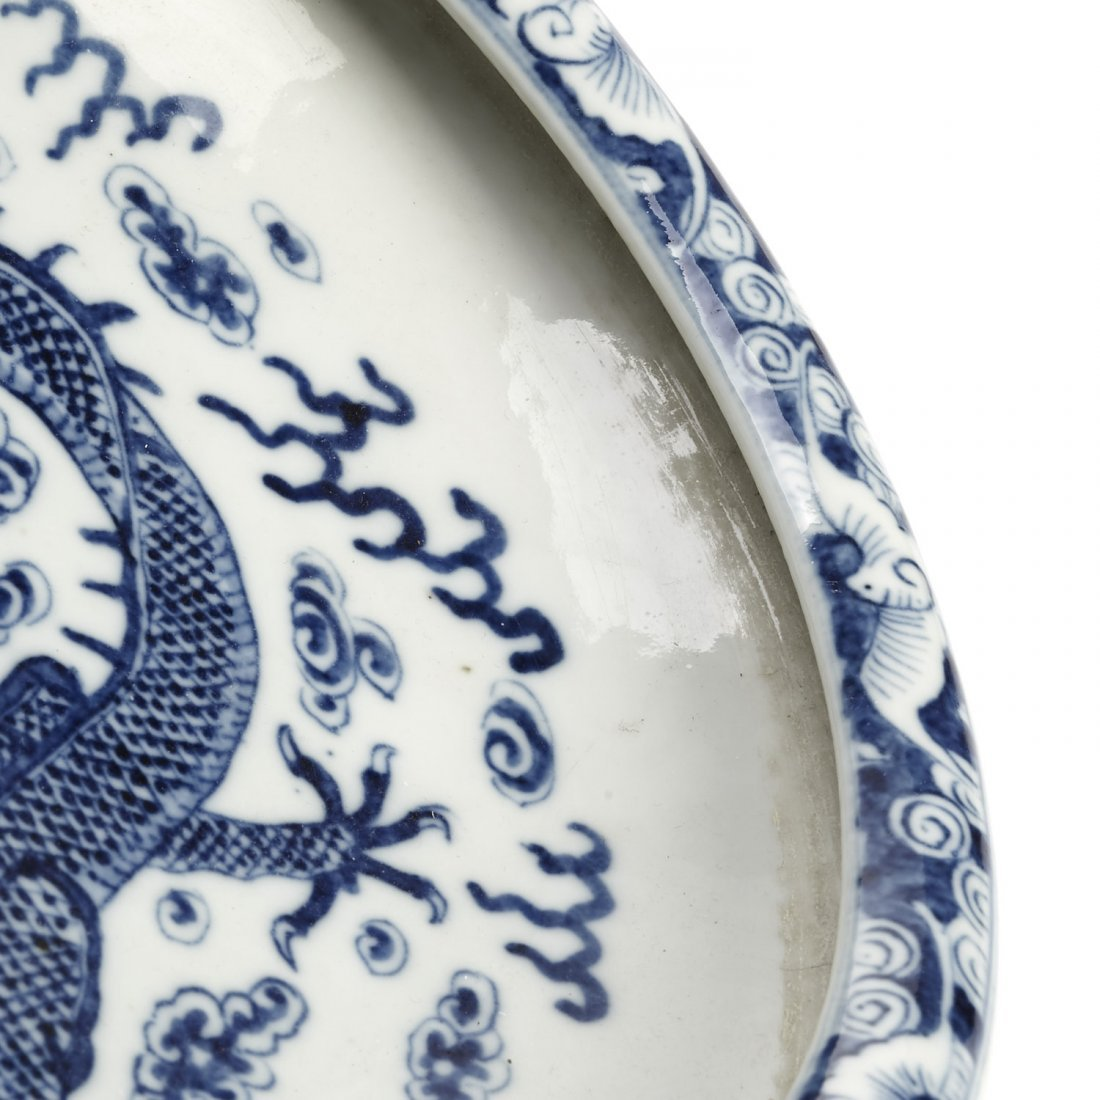 Chinese blue and white porcelain dragon dish - 3